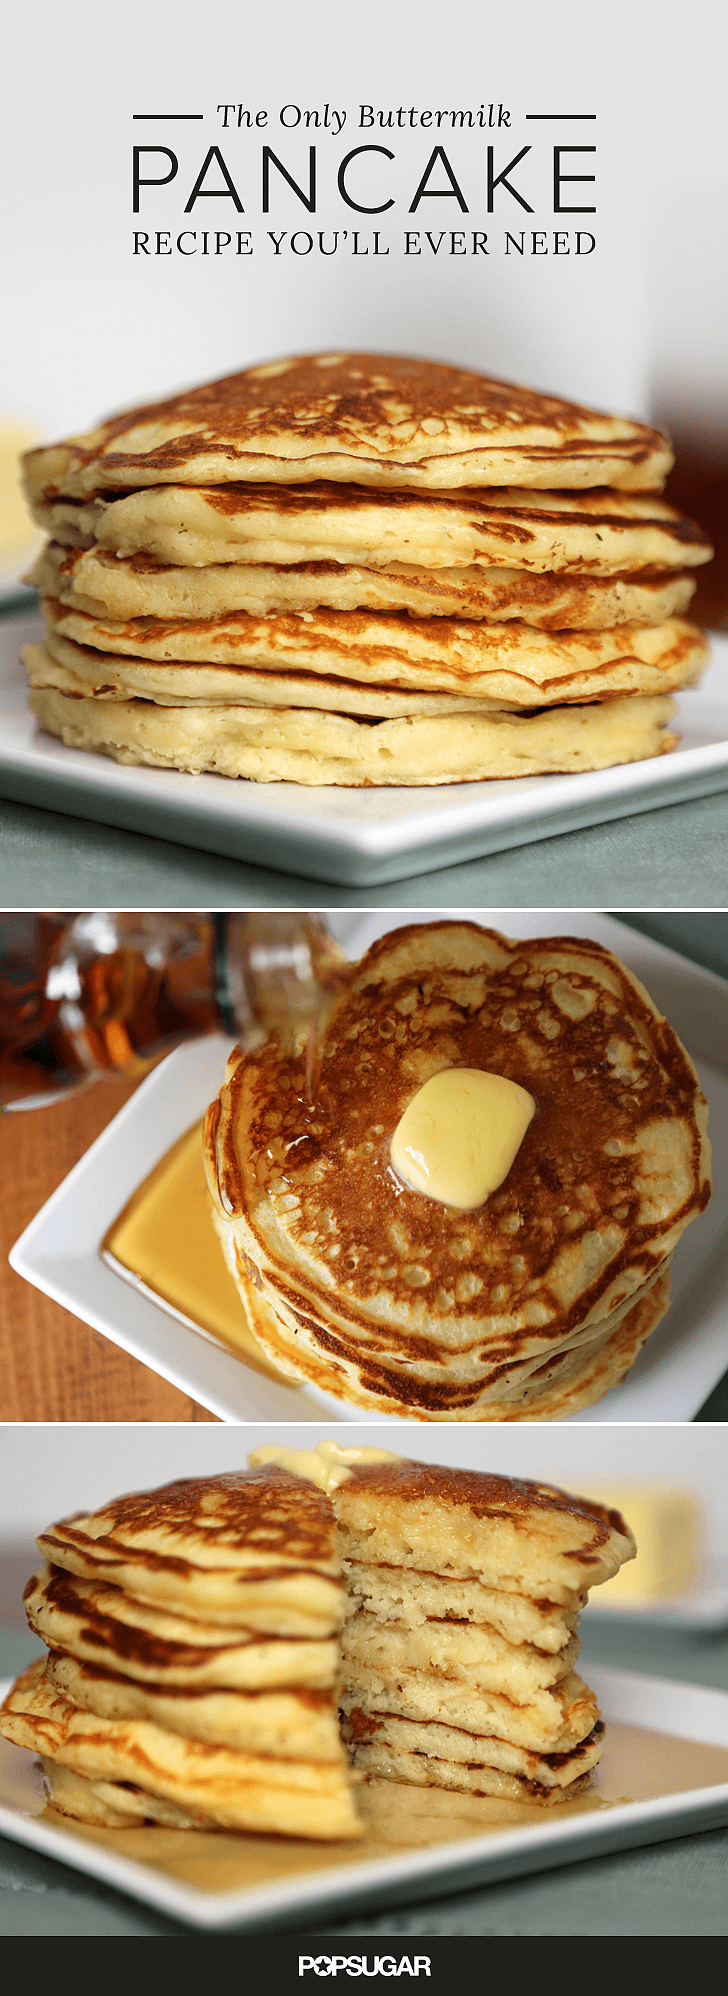 The Only Buttermilk Pancake Recipe You Ll Ever Need Recipe Breakfast Food Recipes Food